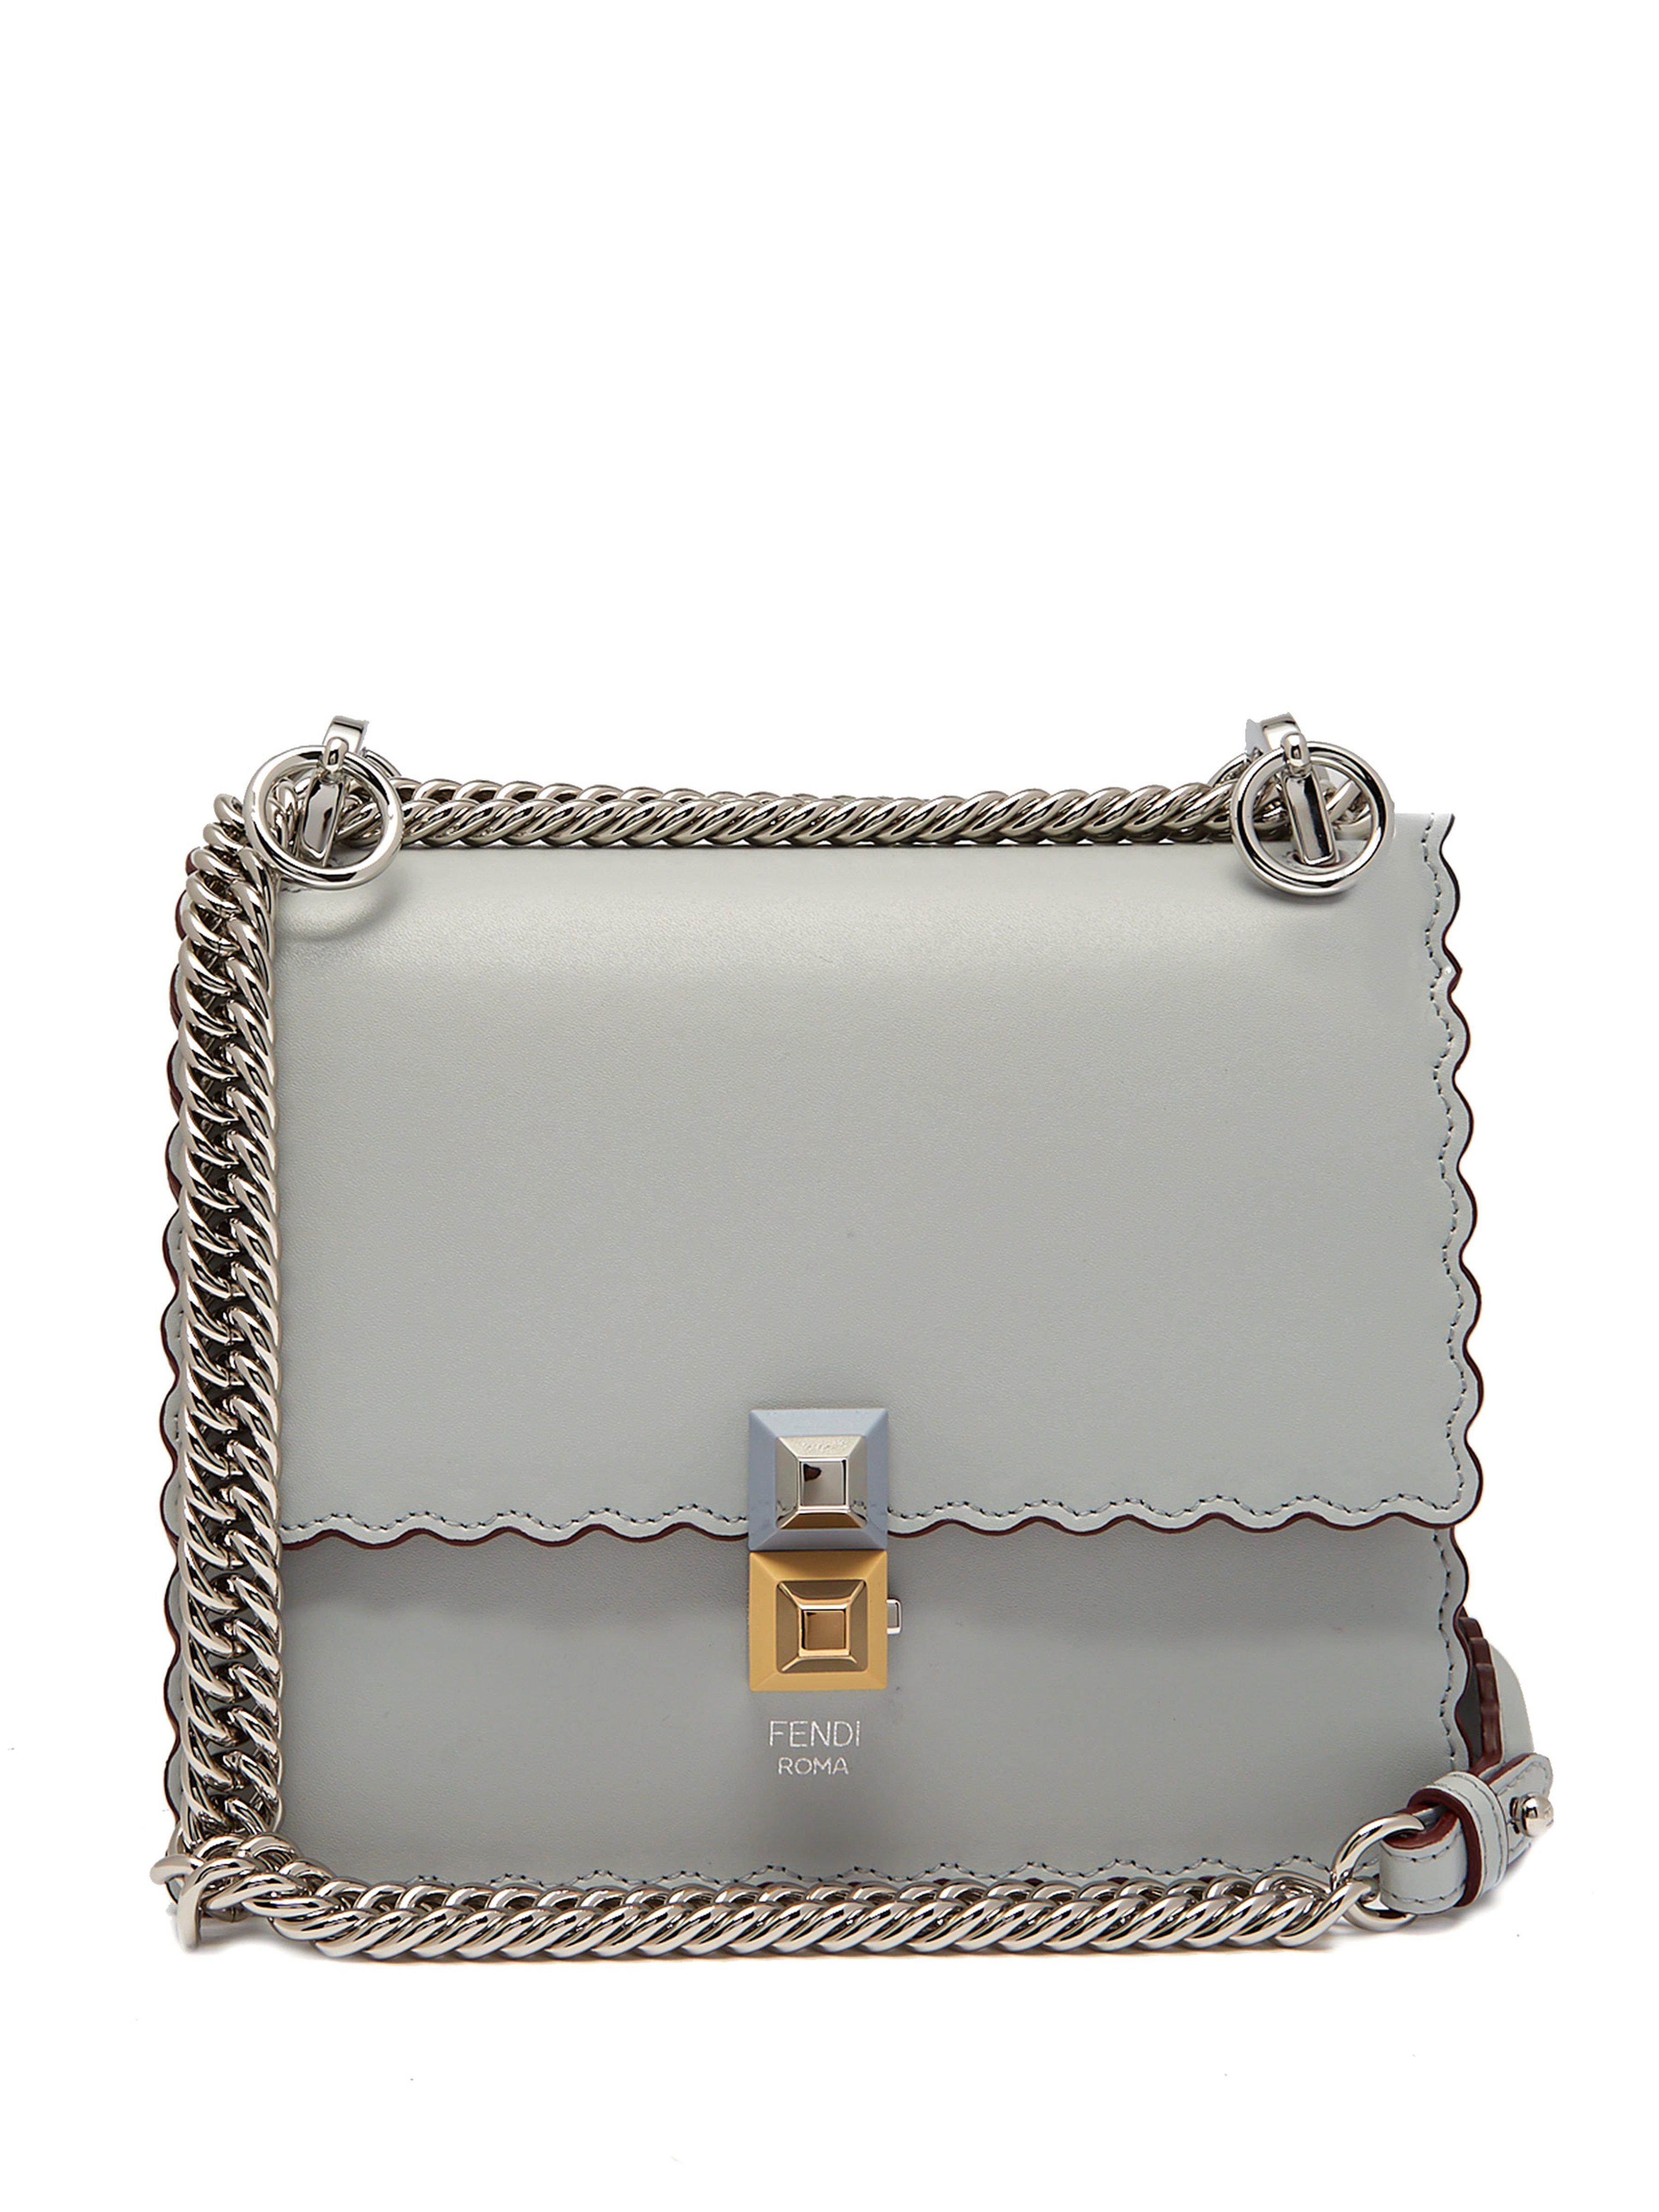 c75d9a6bfd Fendi Kan I Small Leather Cross Body Bag in Blue - Lyst